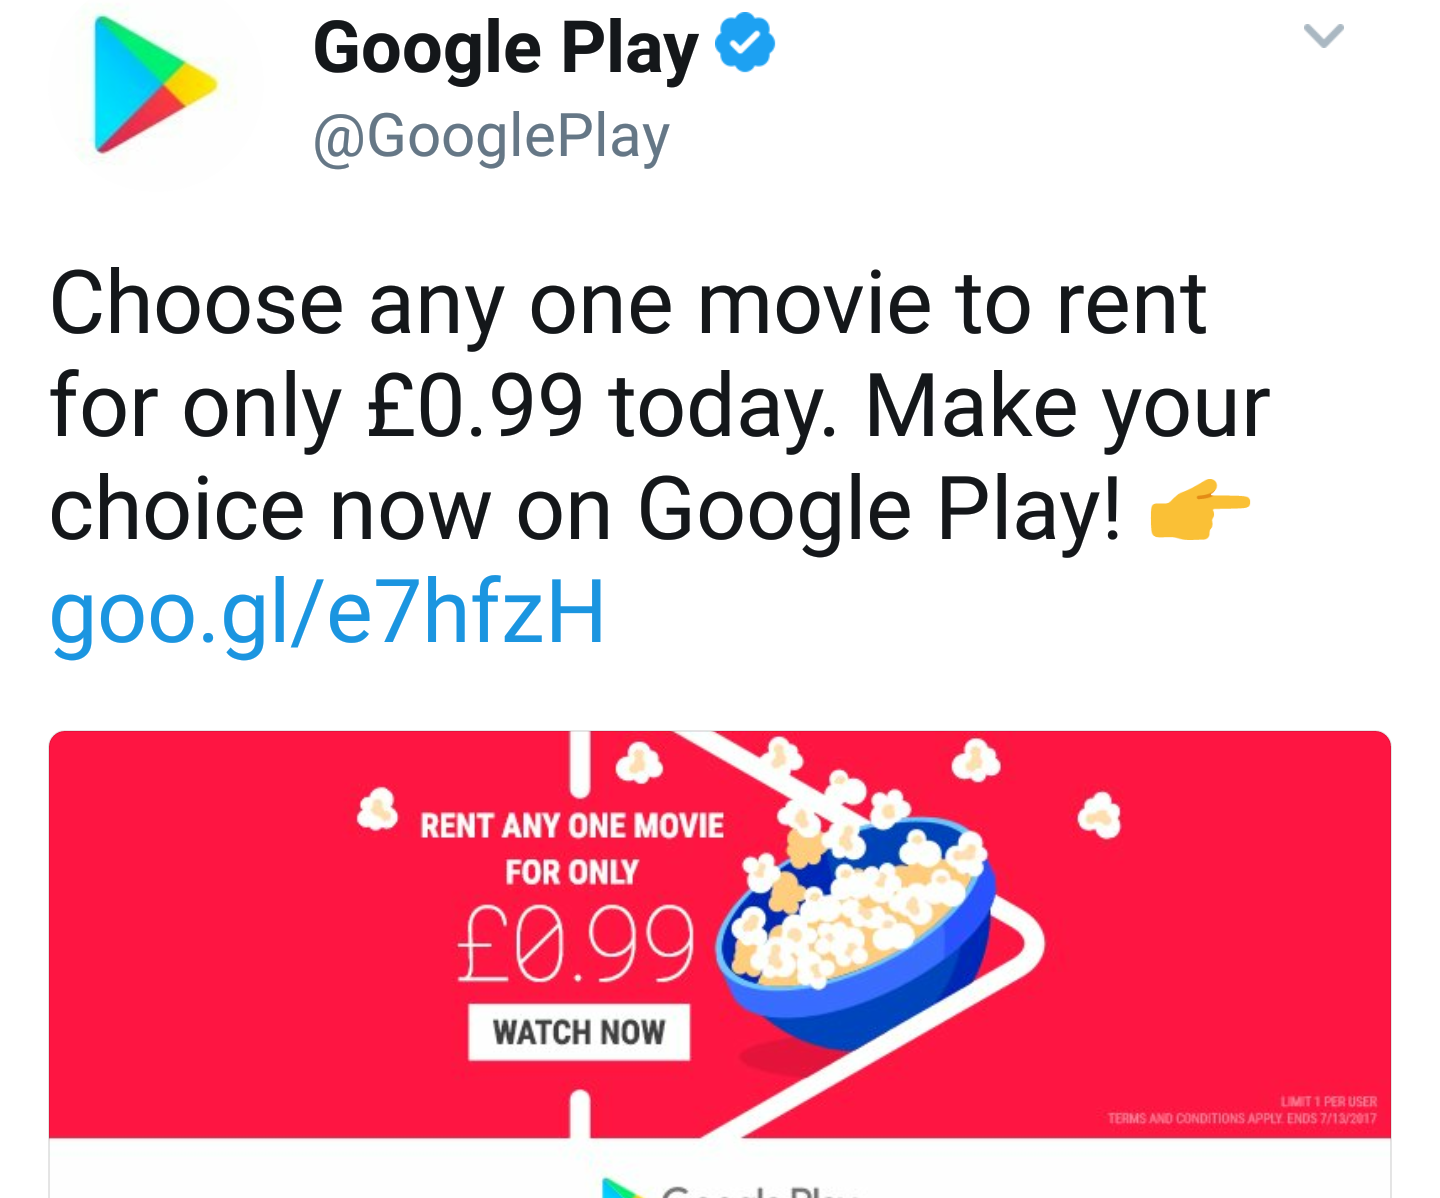 Google Play serving up a 99p movie rental